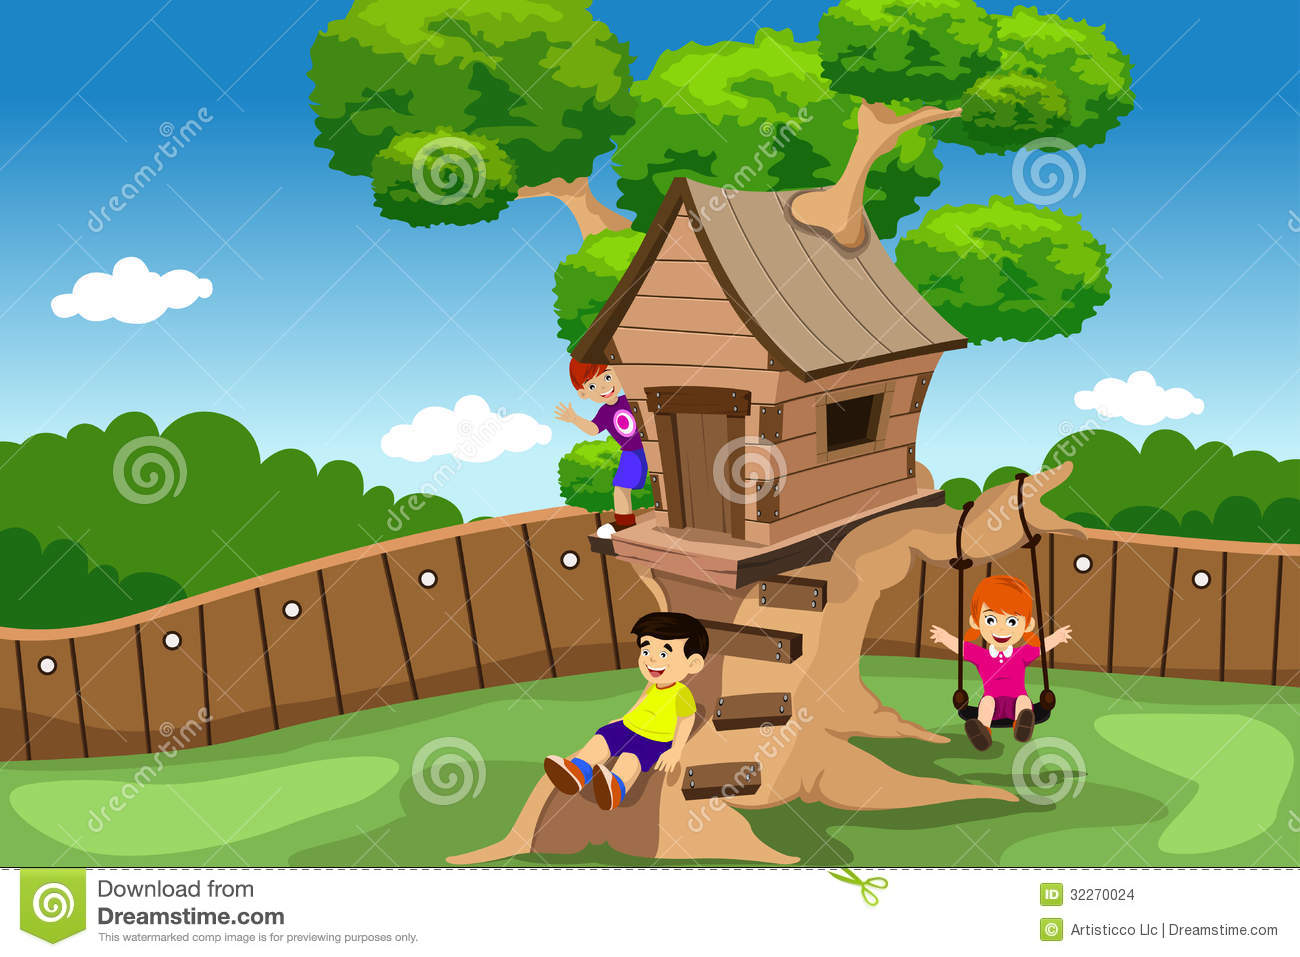 Kids Tree House kids playing in a tree house stock images - image: 32270024